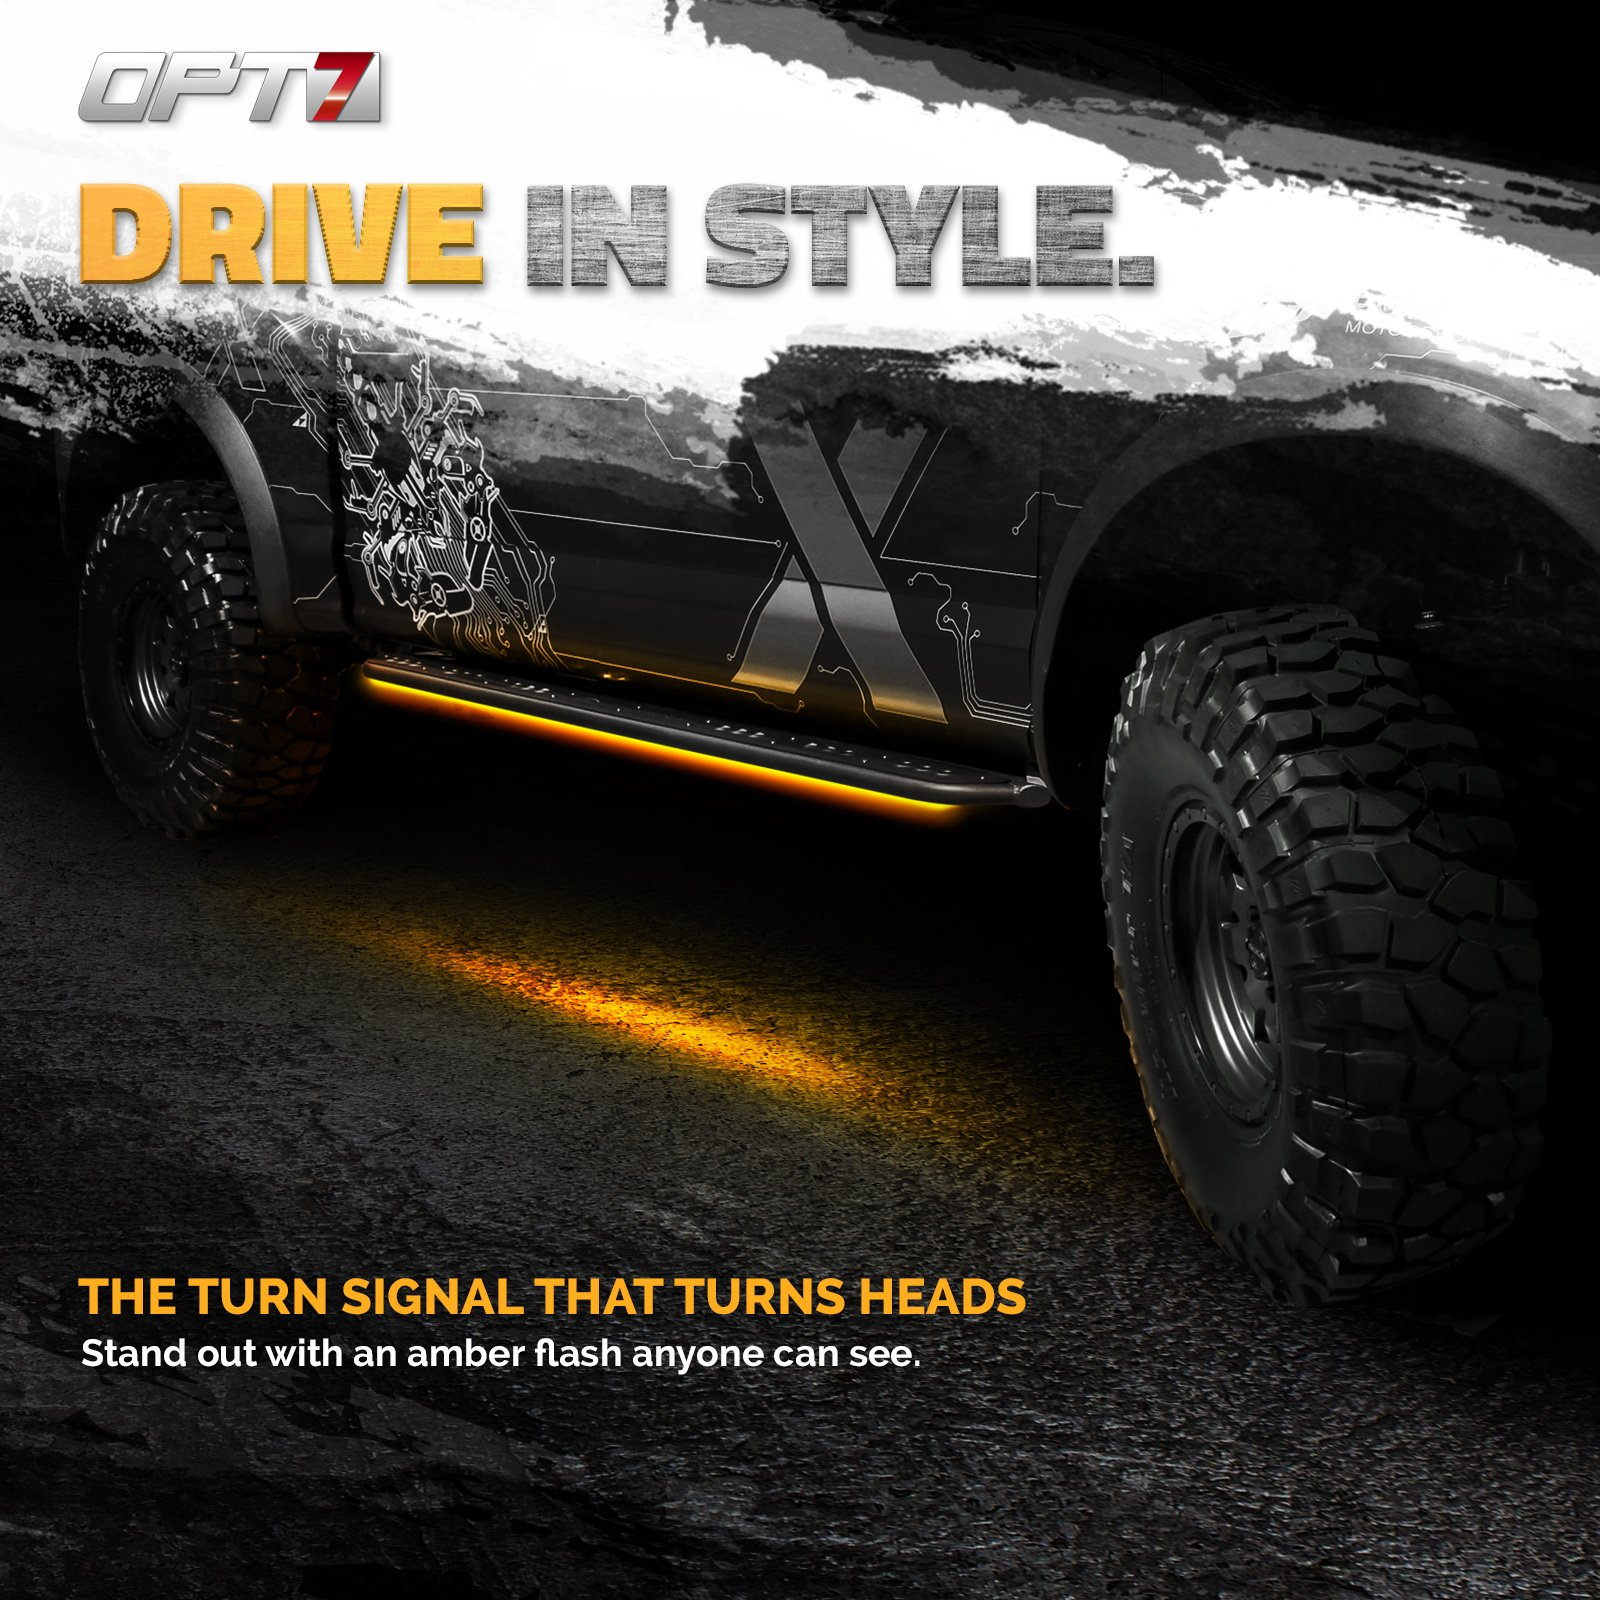 OPT7 2pc 60'' Side Kick Running Board LED Strips w/Amber Turn Signal, DRL, and White Courtesy Lights by OPT7 (Image #3)